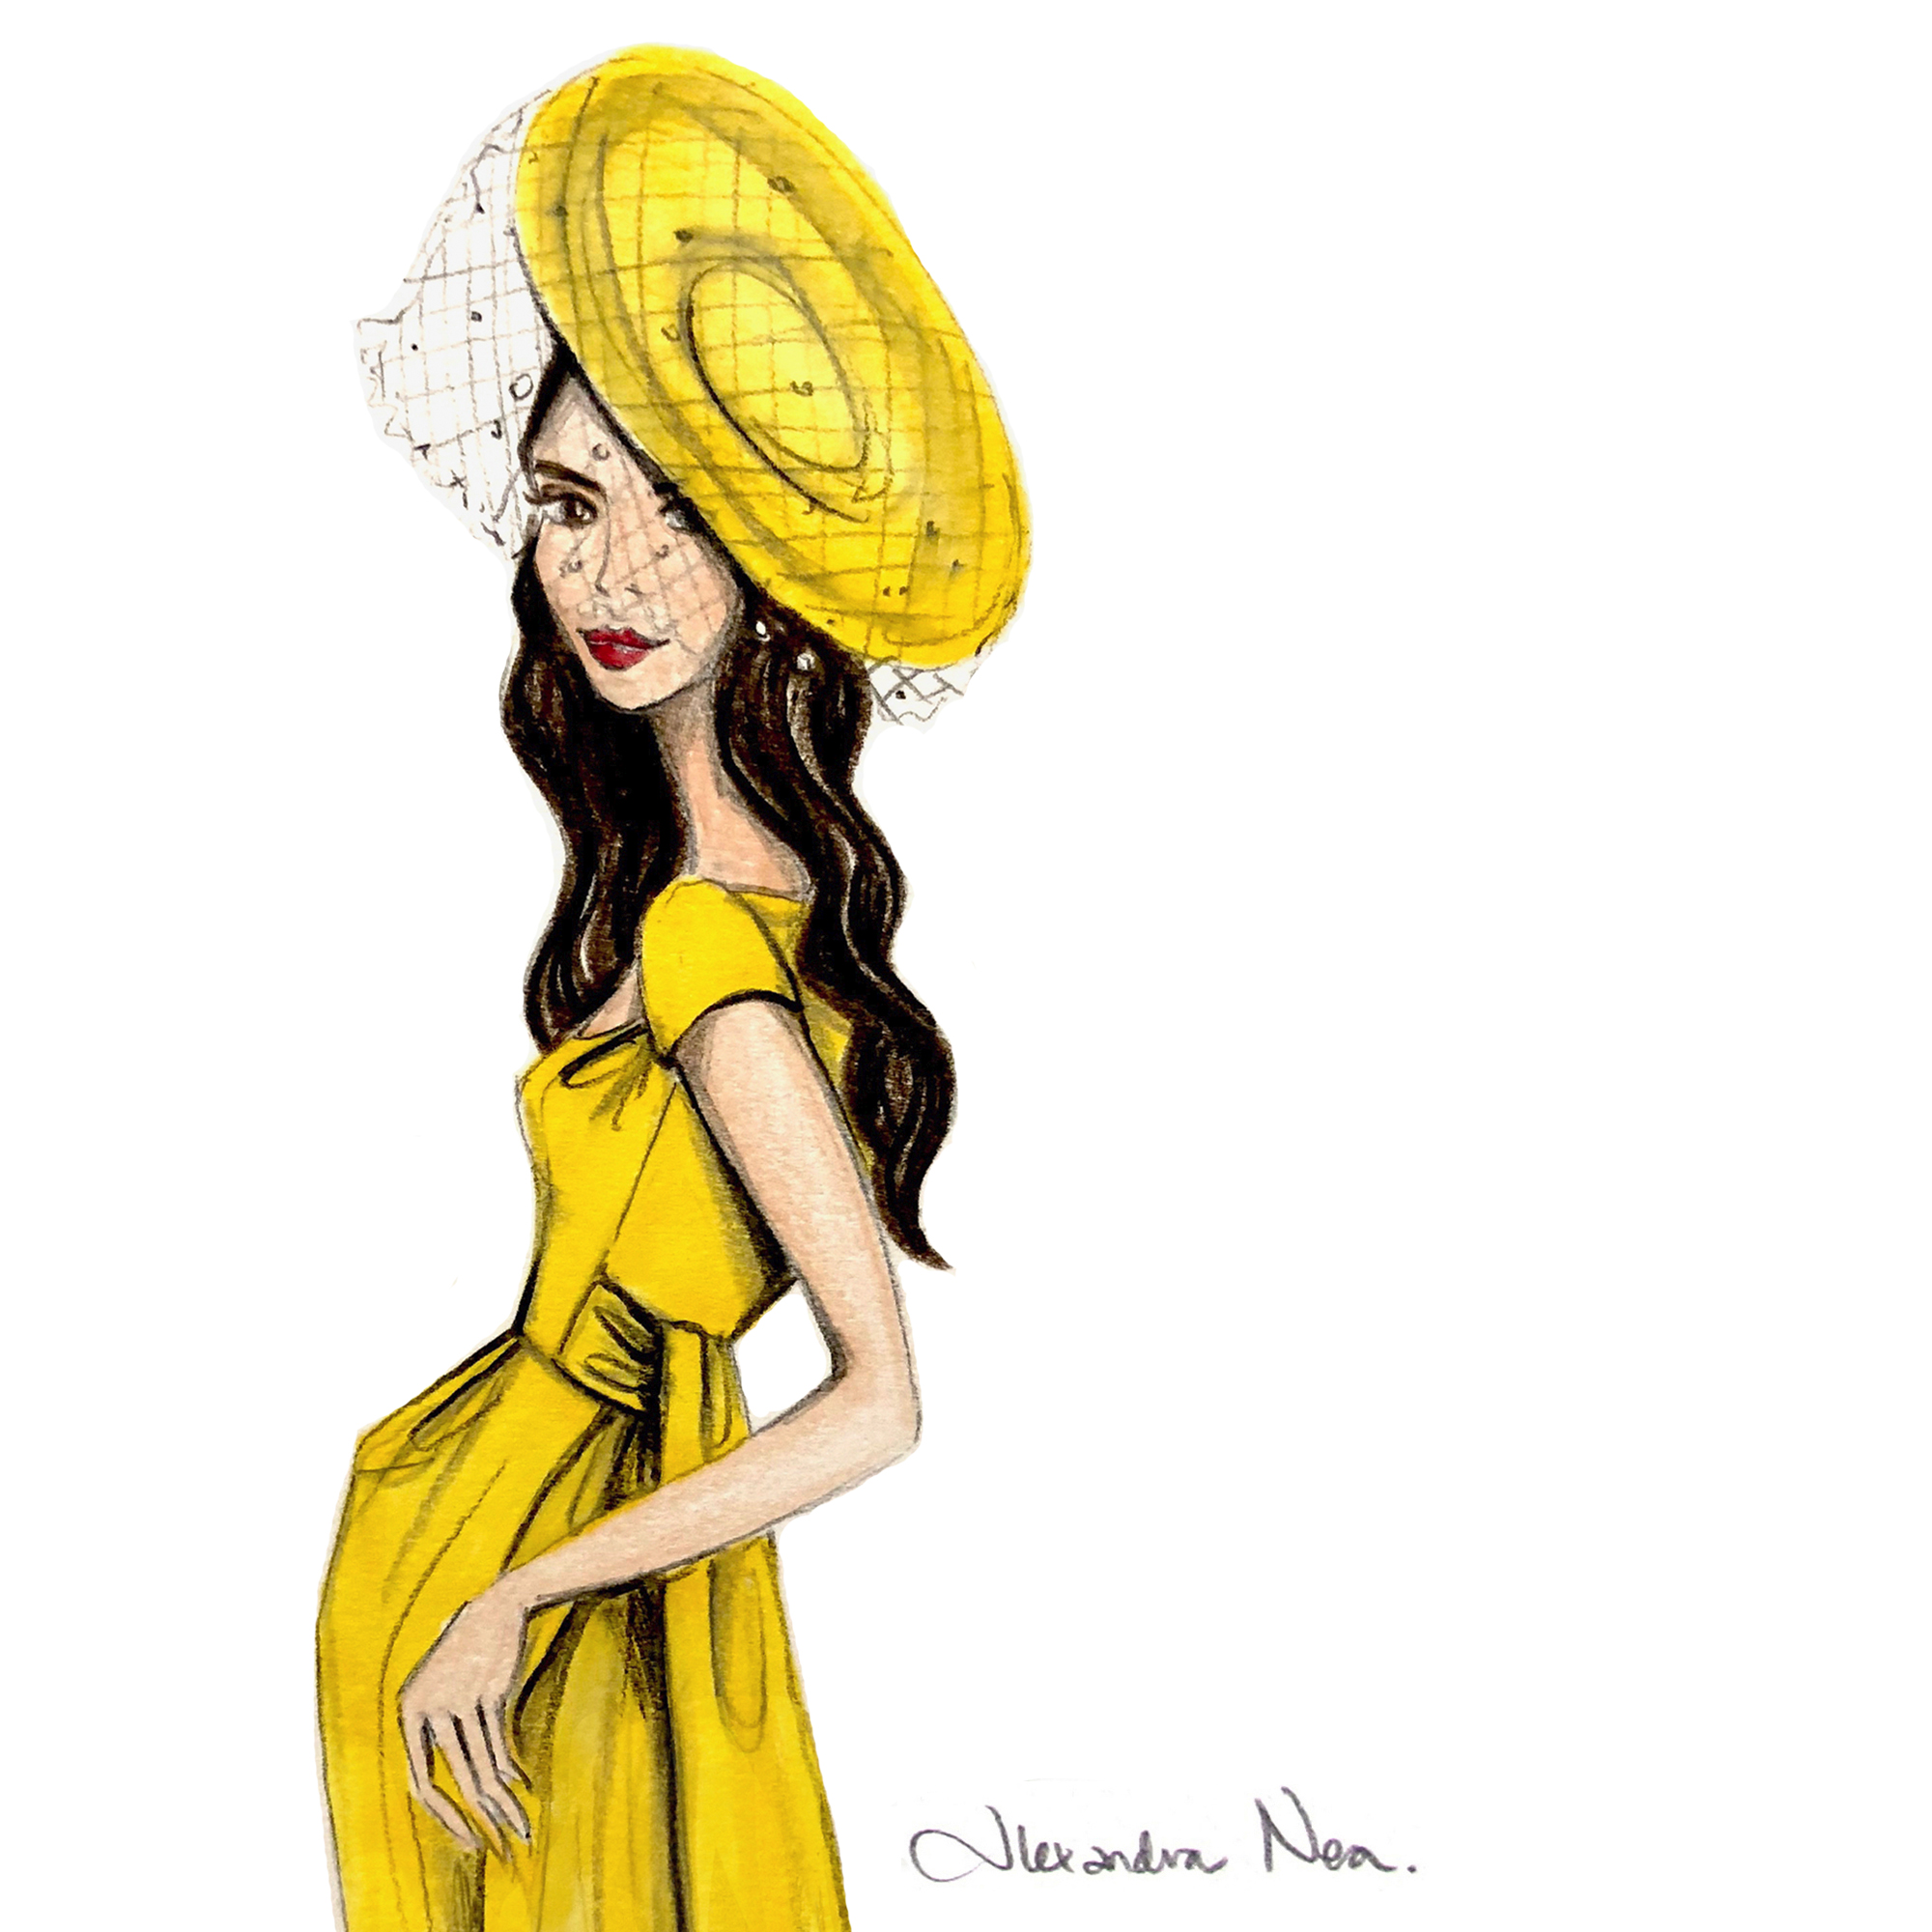 Illustration of royal wedding guest Amal Clooney created by illustrator Alexandra Nea (Alexandra Nea)